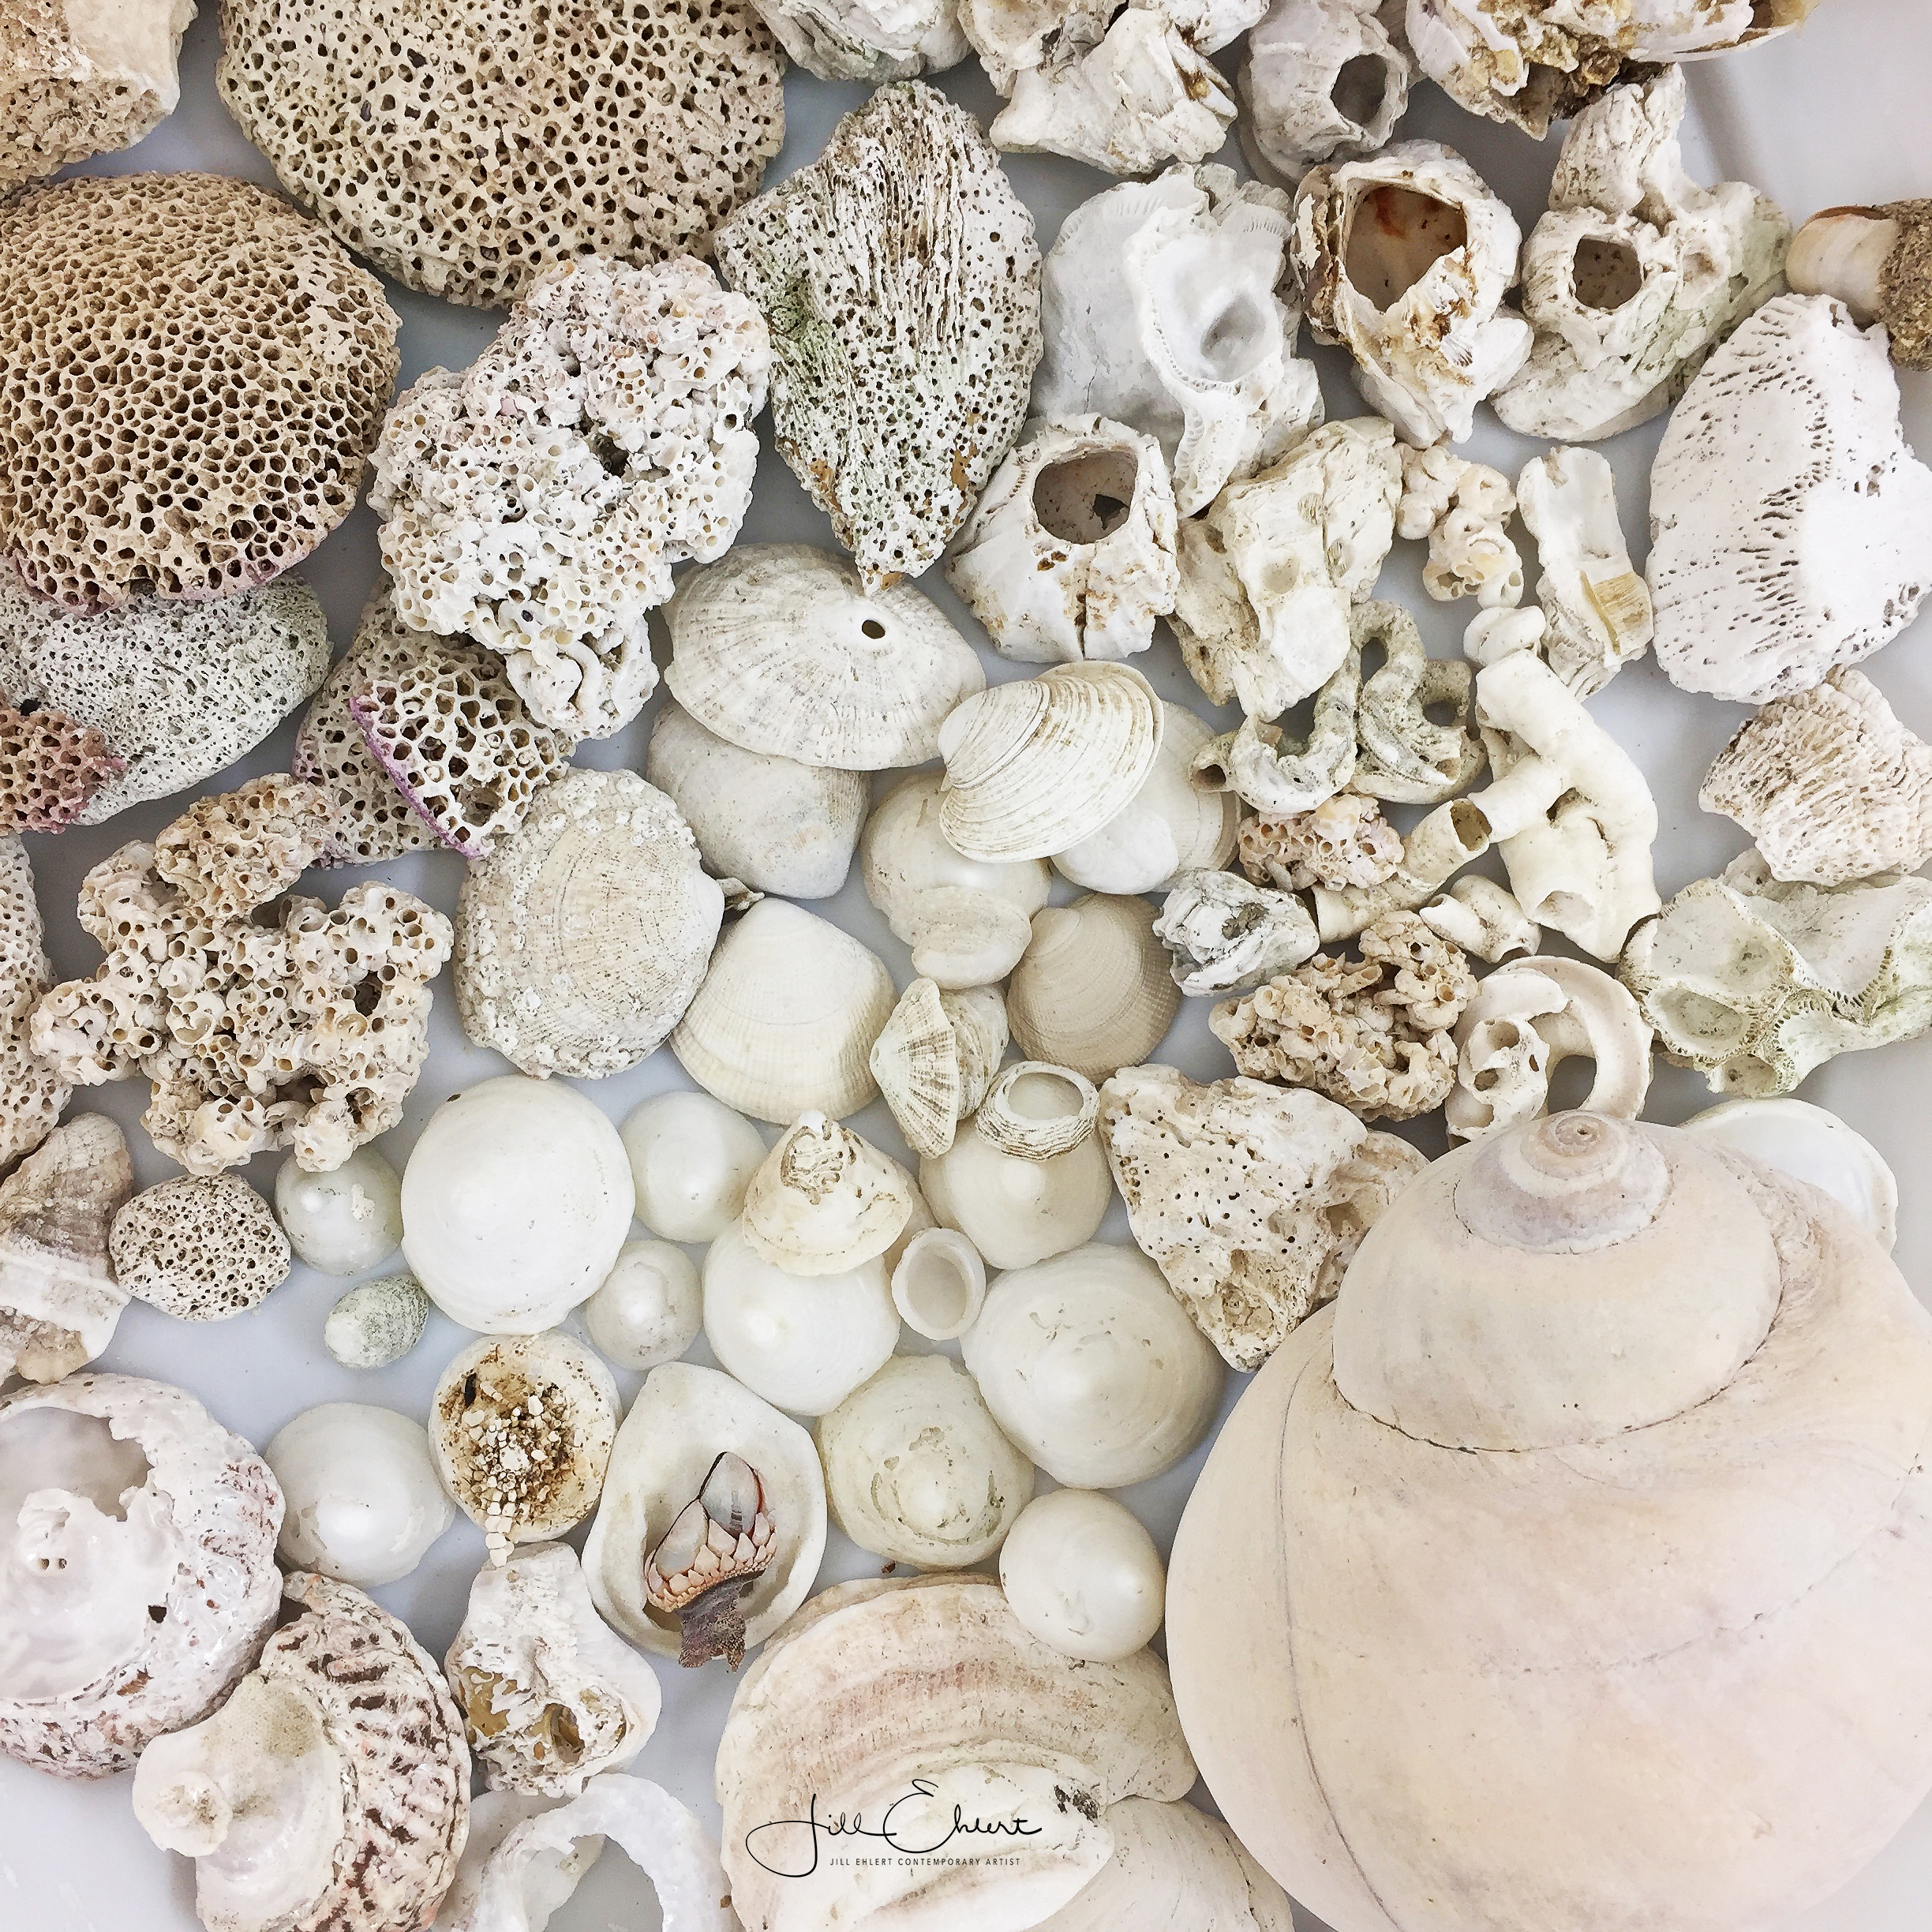 Shell collection_5.jpg